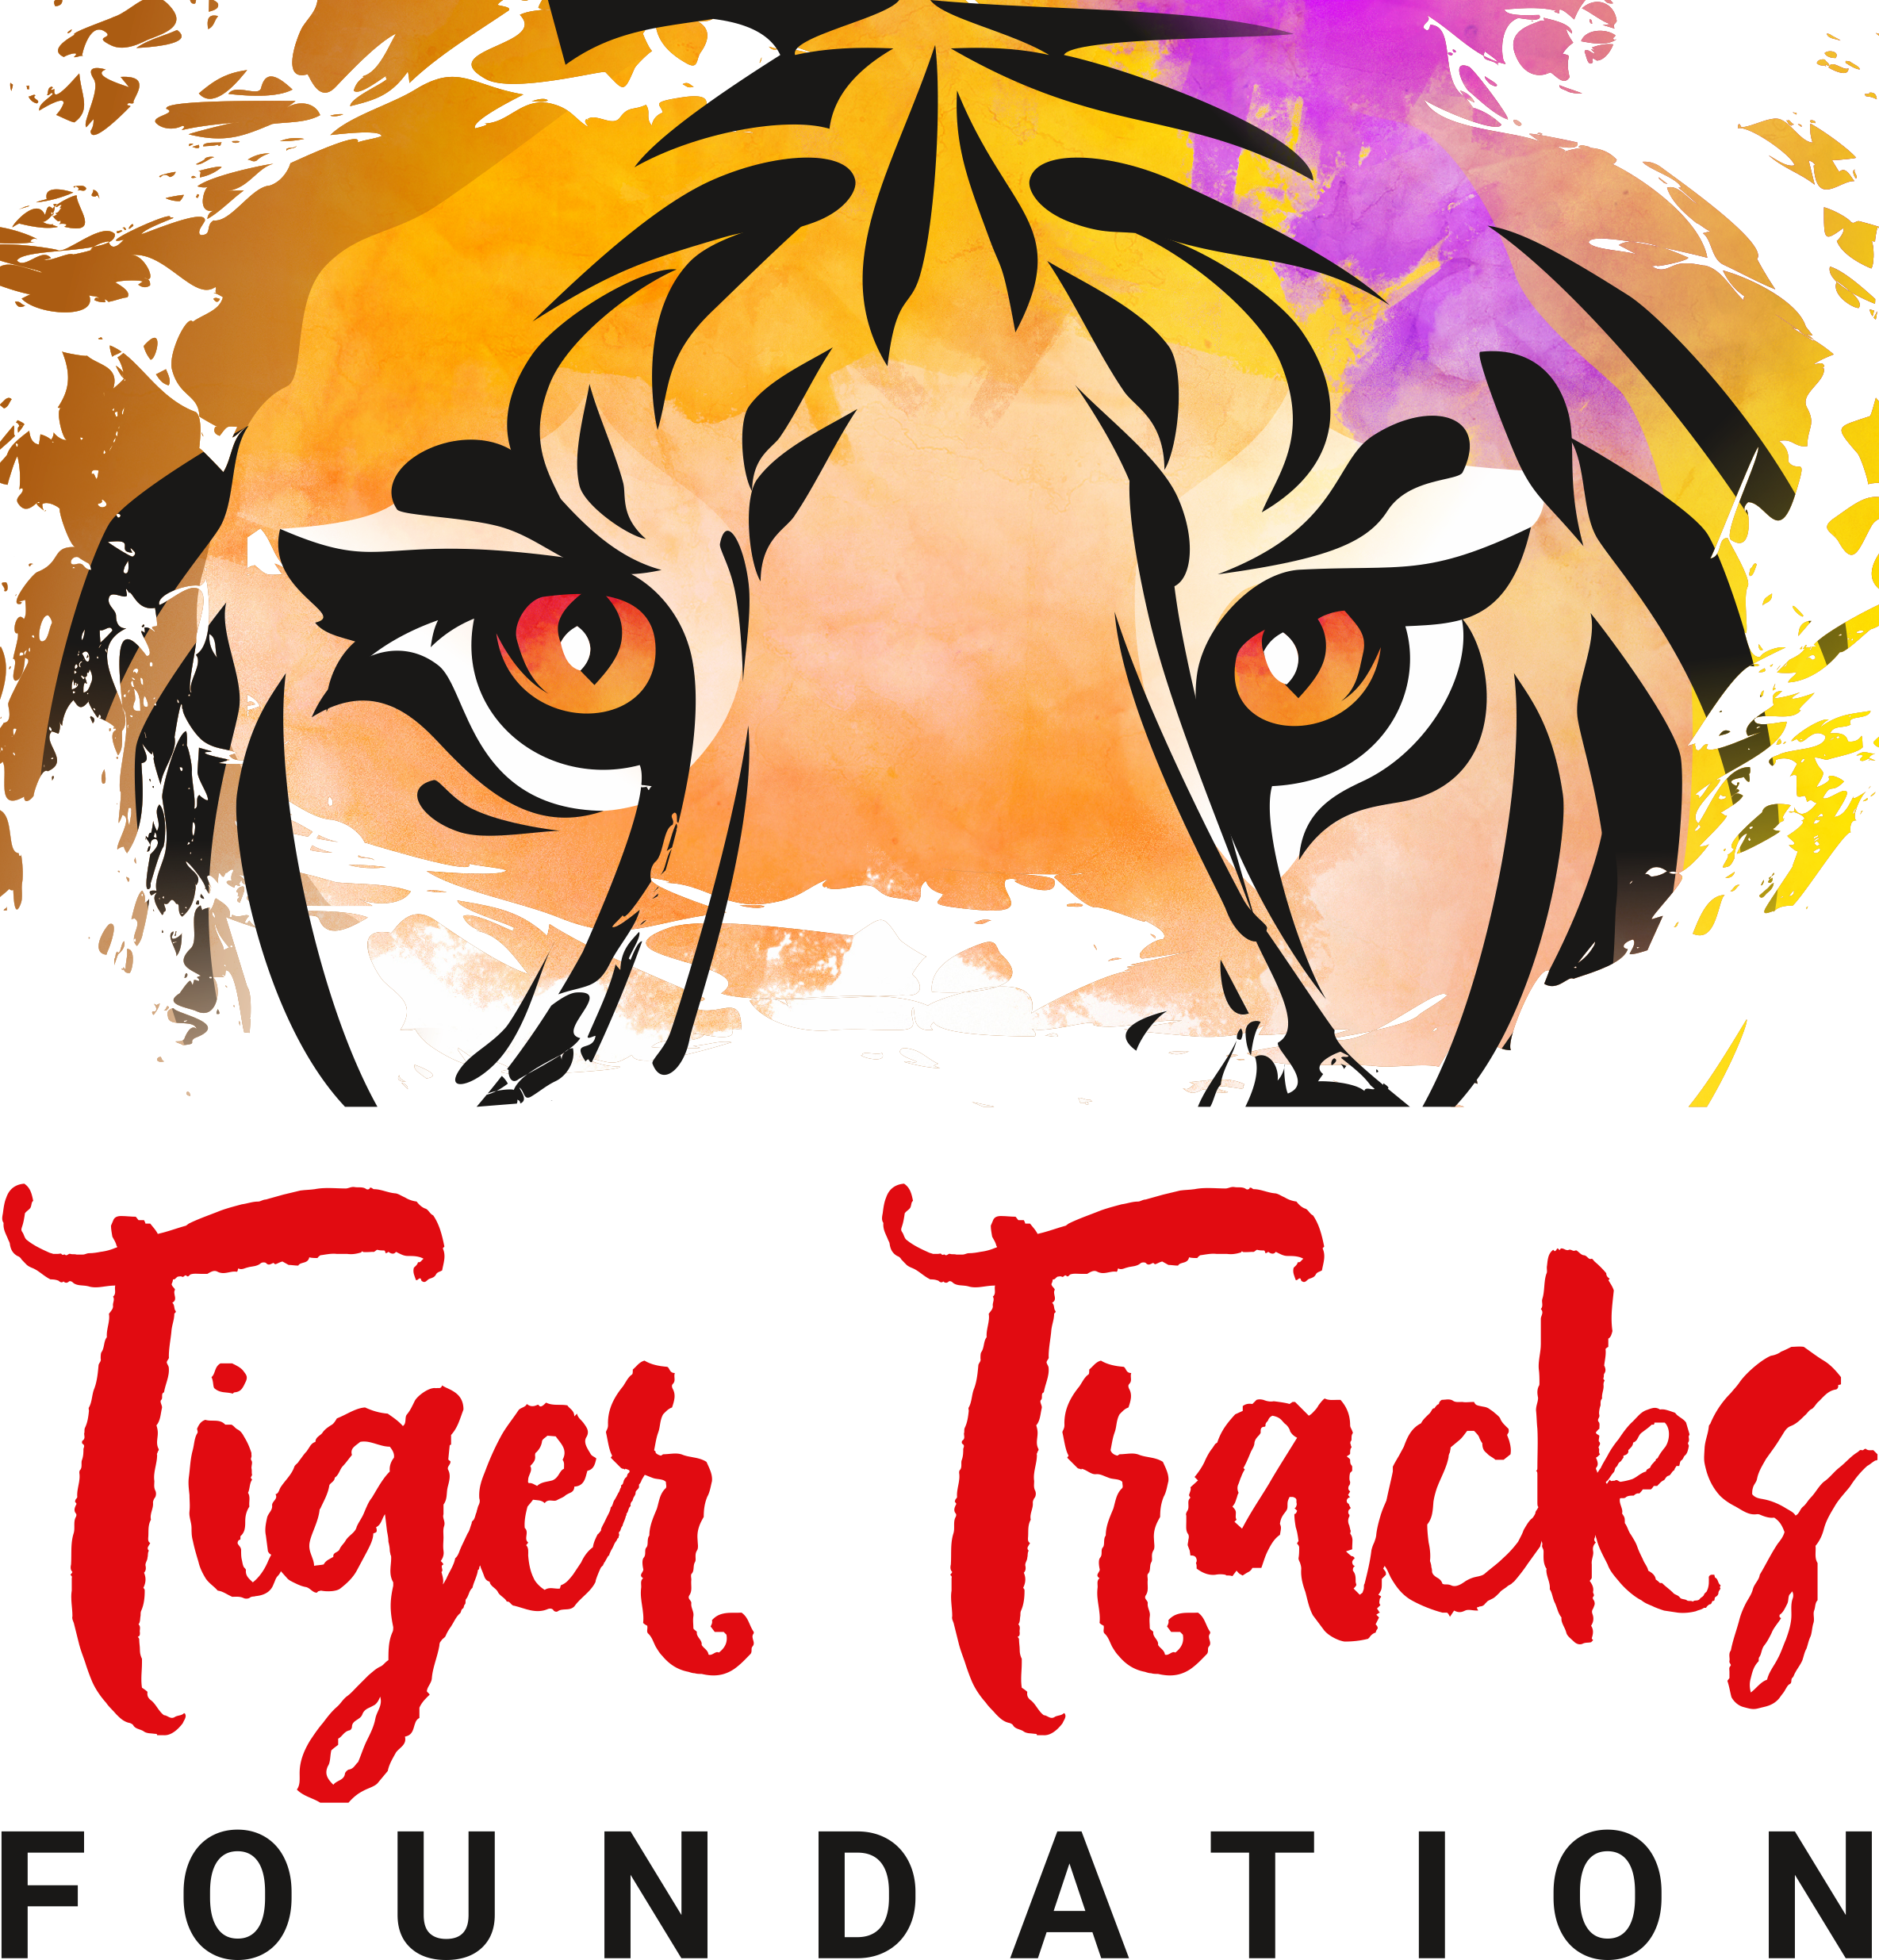 Dancing with the Cubs logo and Tiger Tracks logo